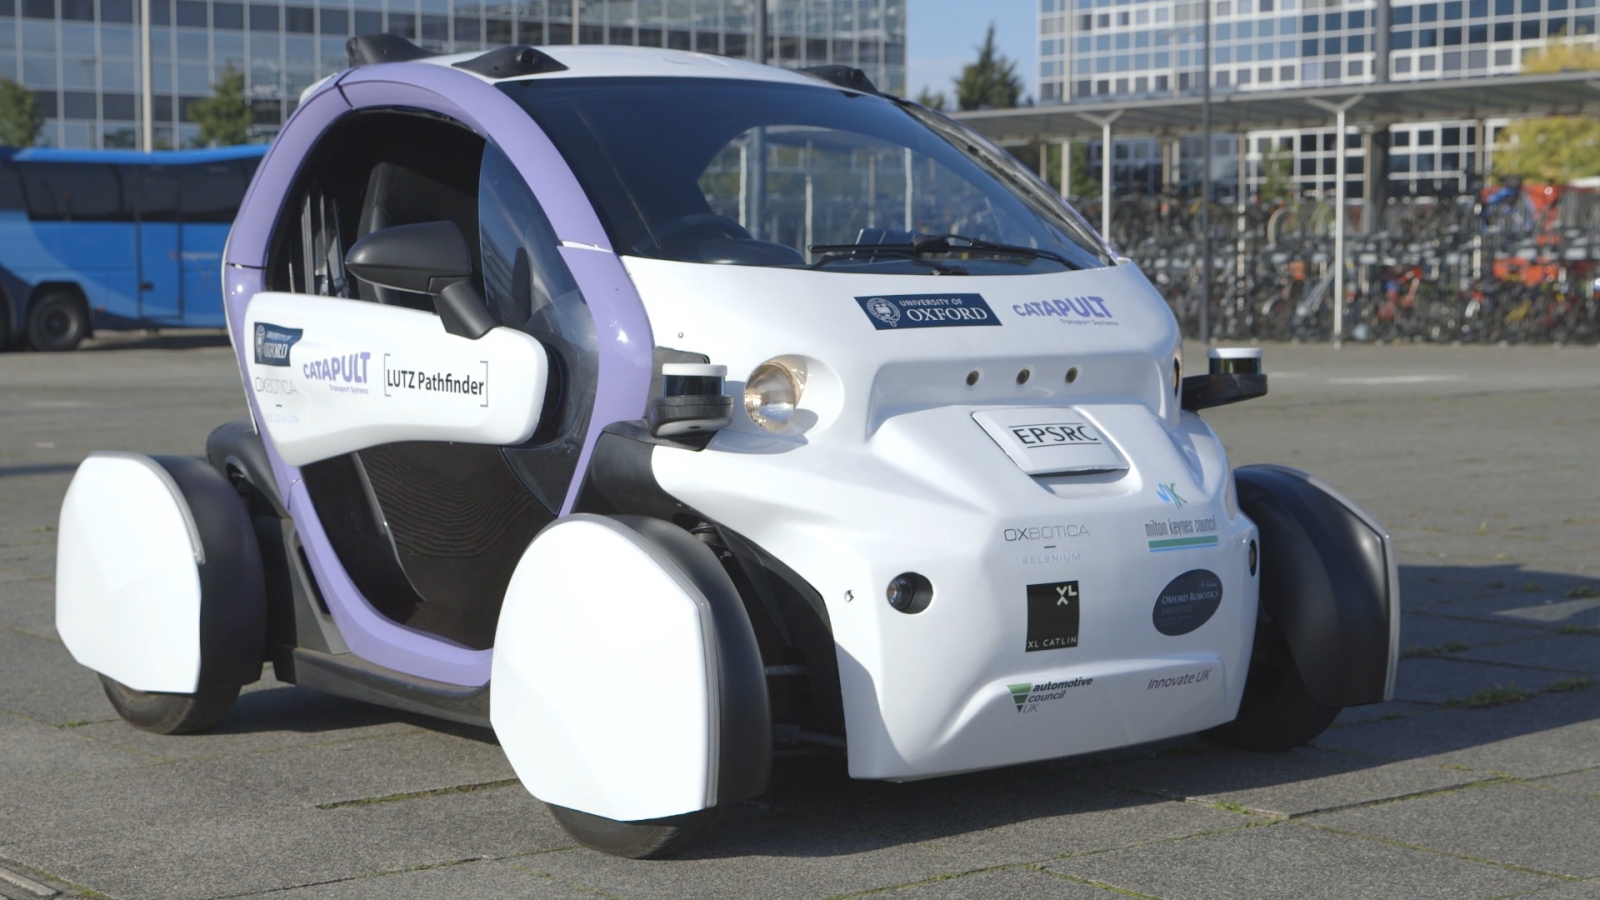 Selenium: UK's first self-driving public space